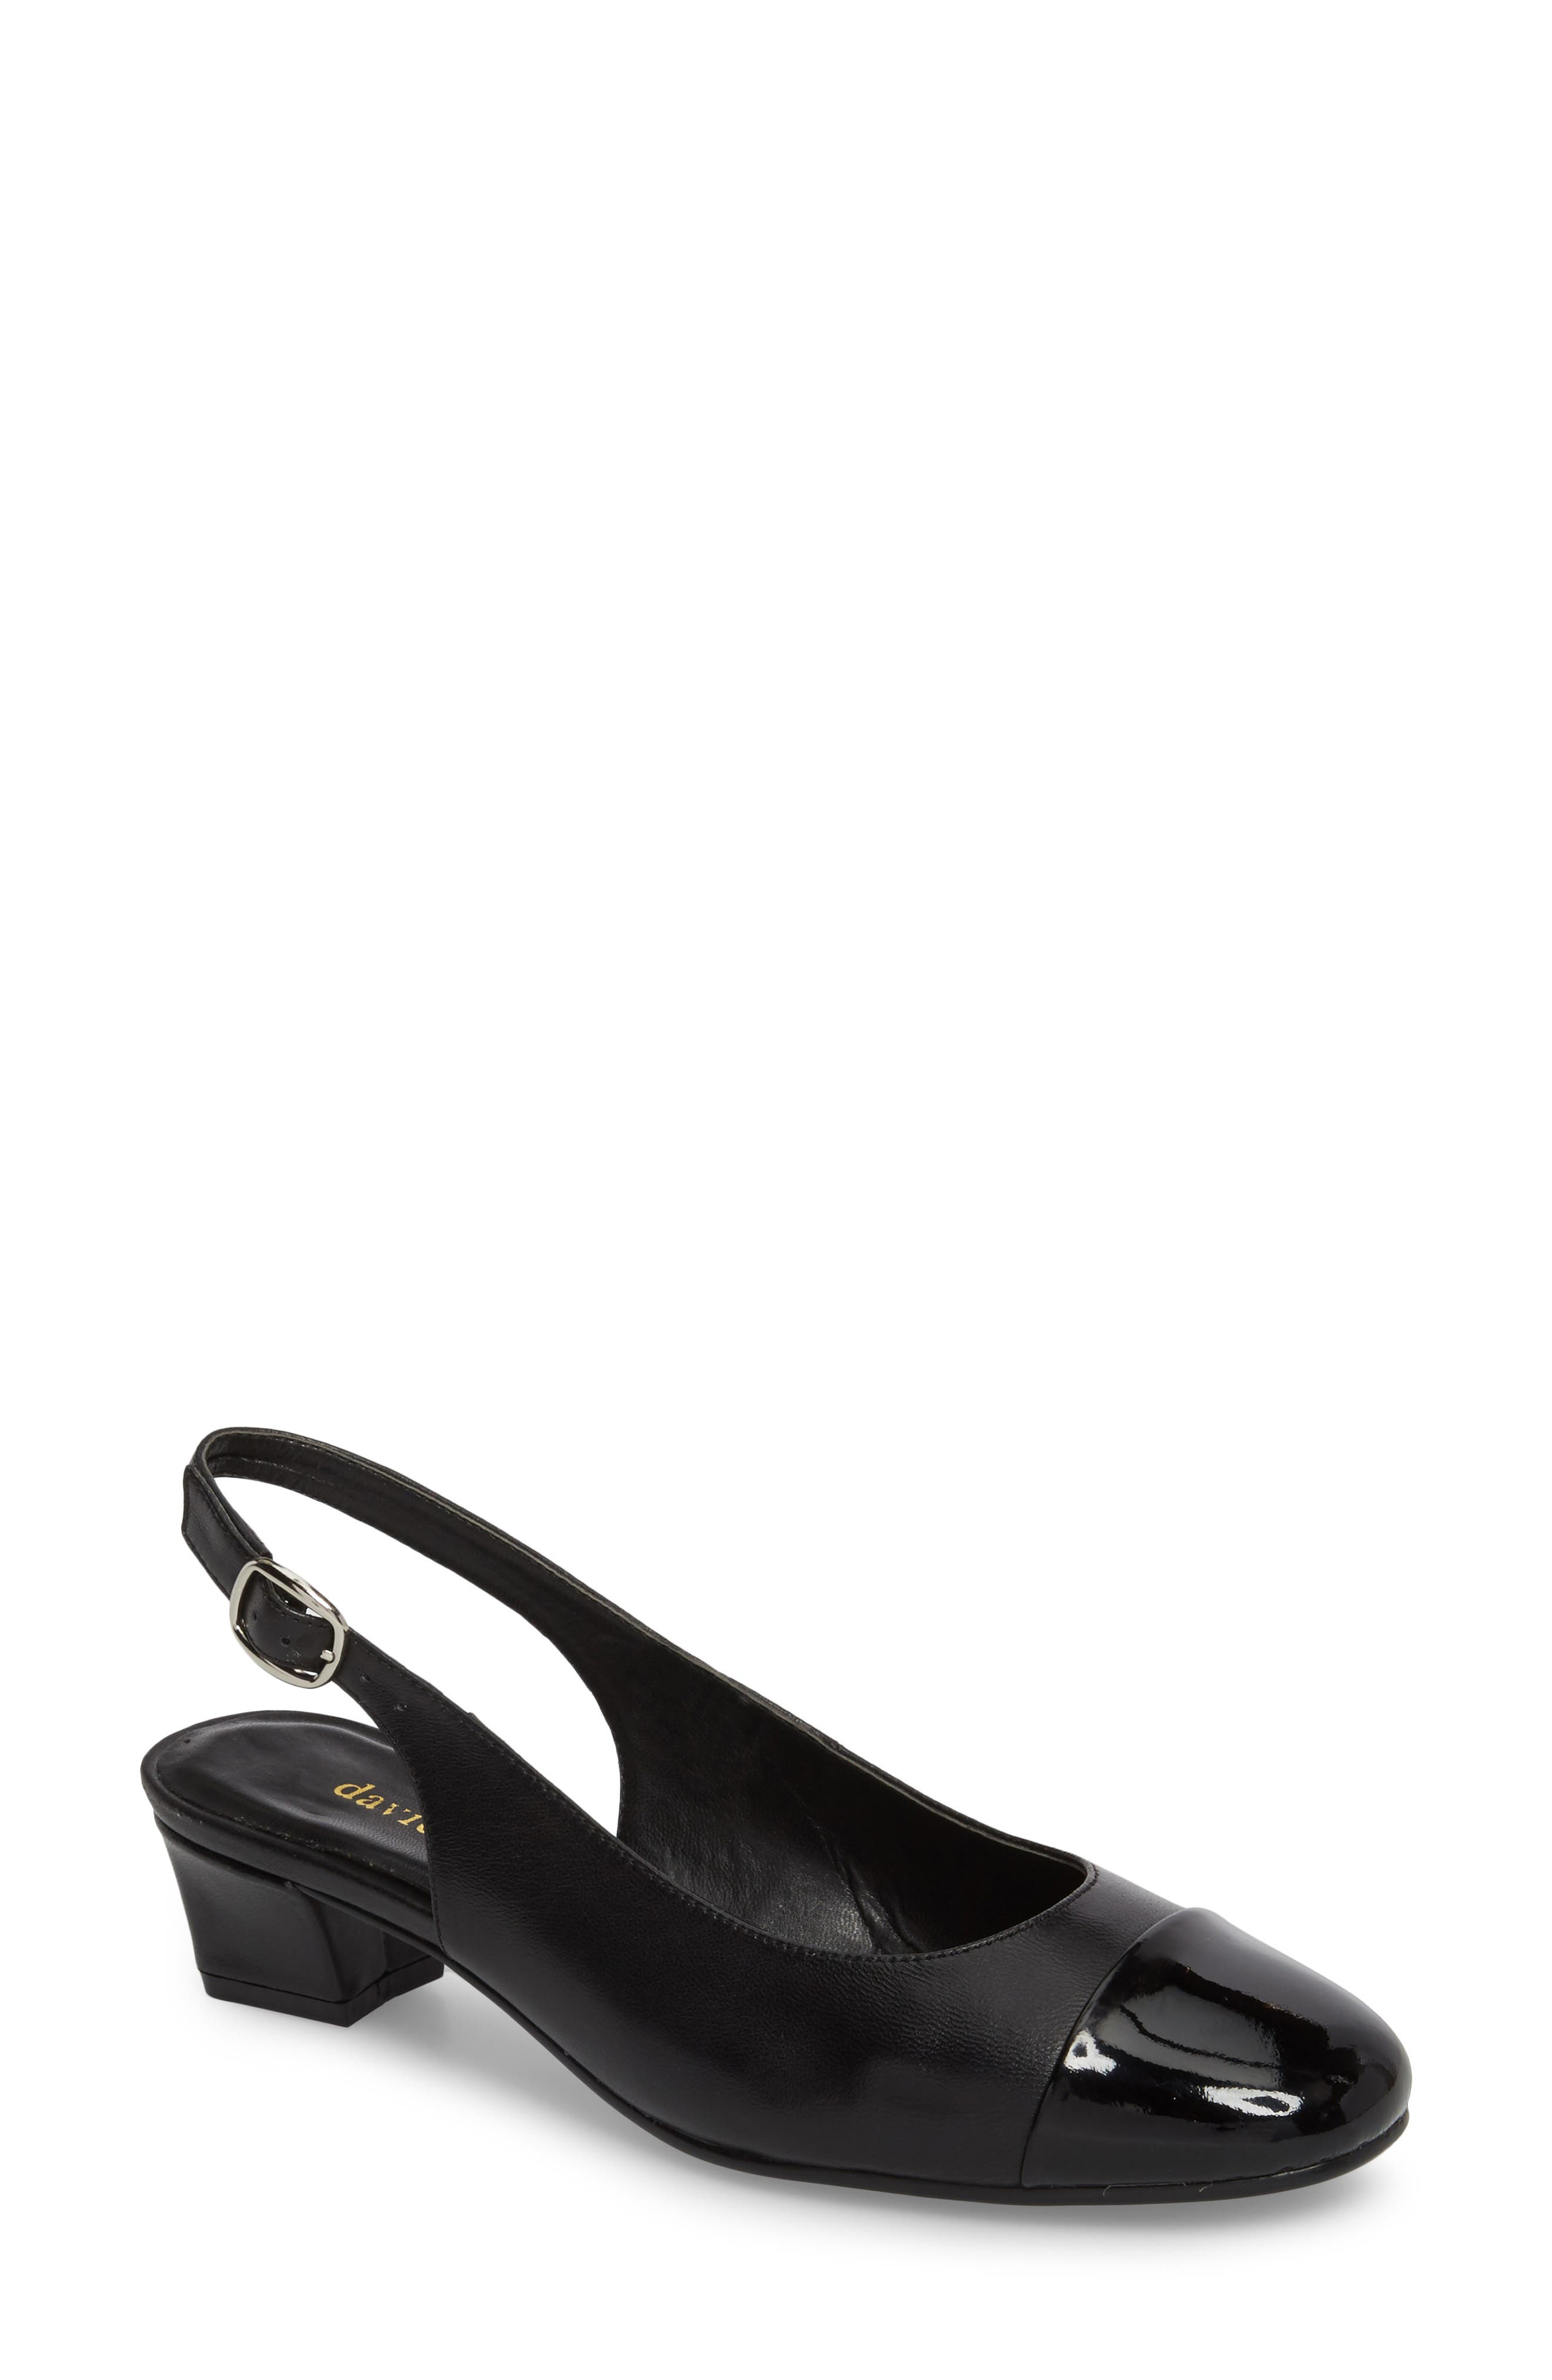 Glorious Slingback Pump,                             Main thumbnail 1, color,                             Black Leather